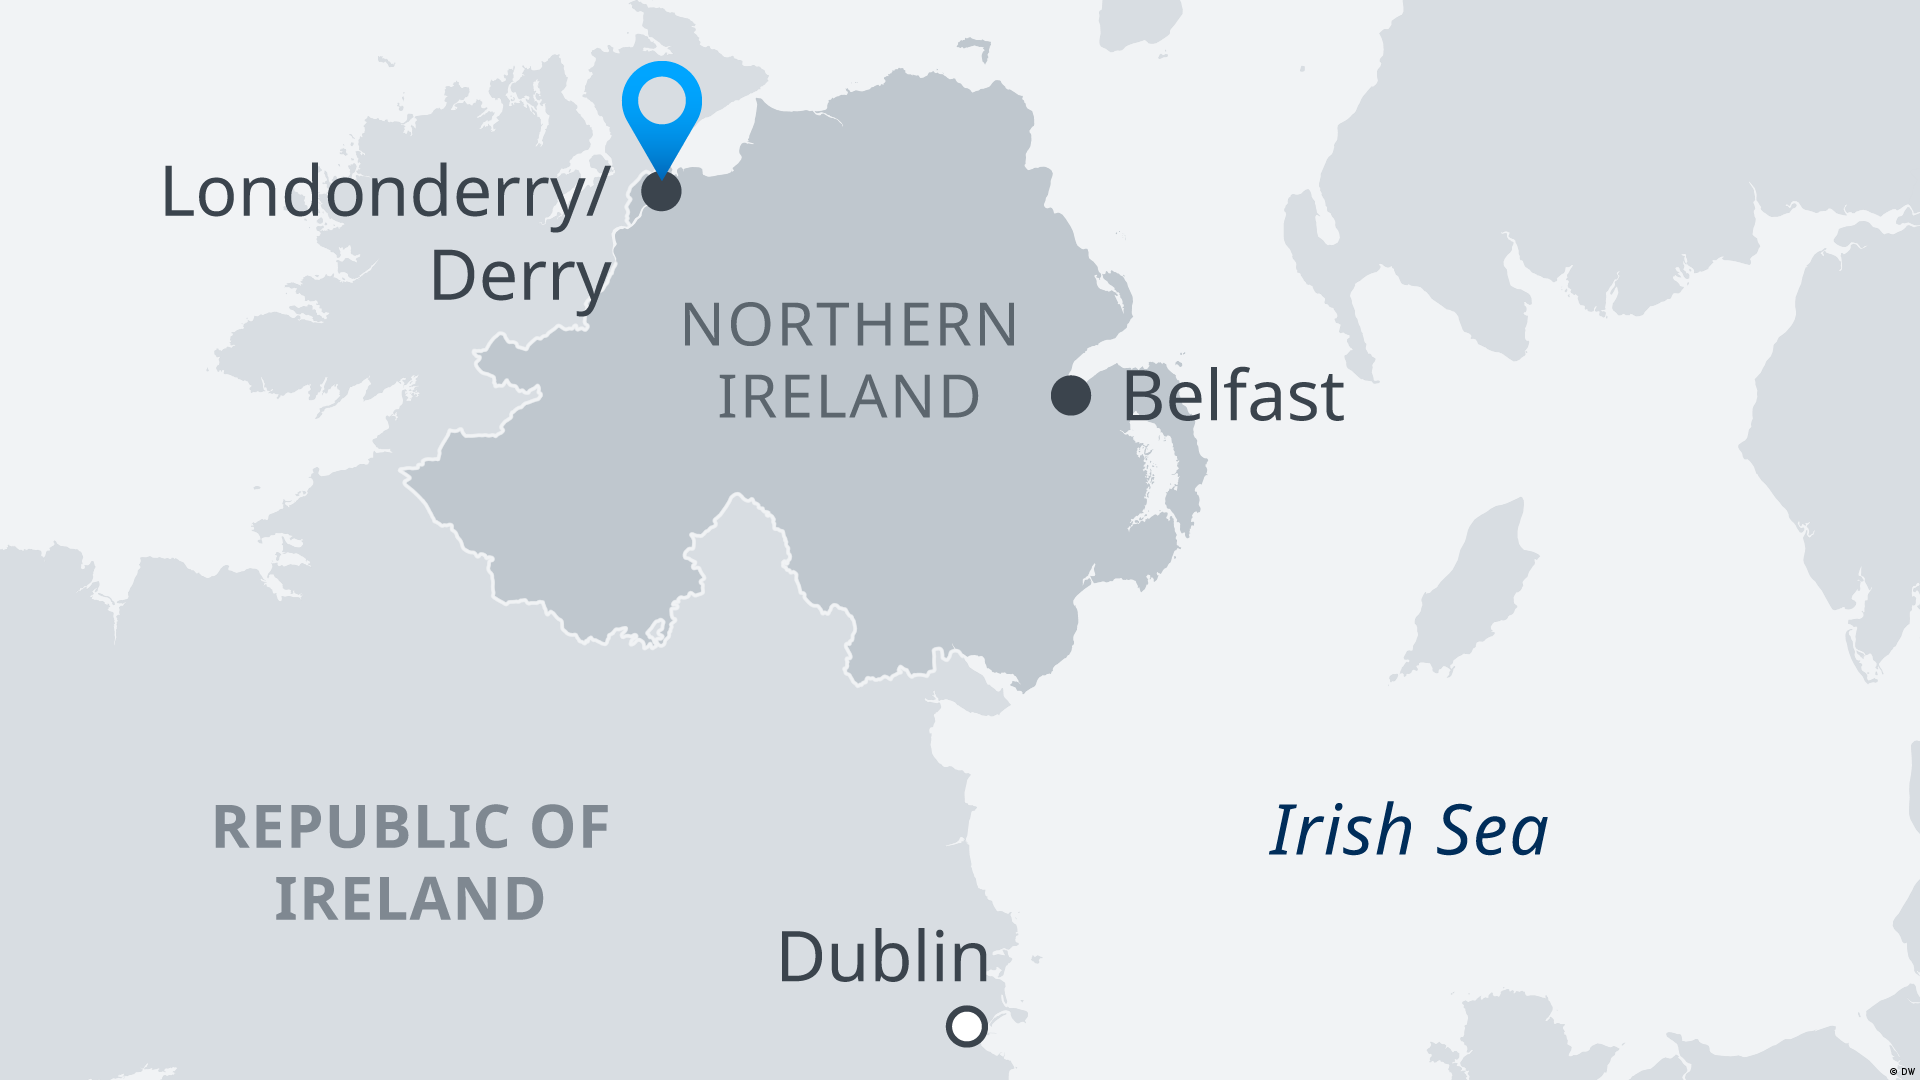 Map of Londonderry/Derry in Northern Ireland